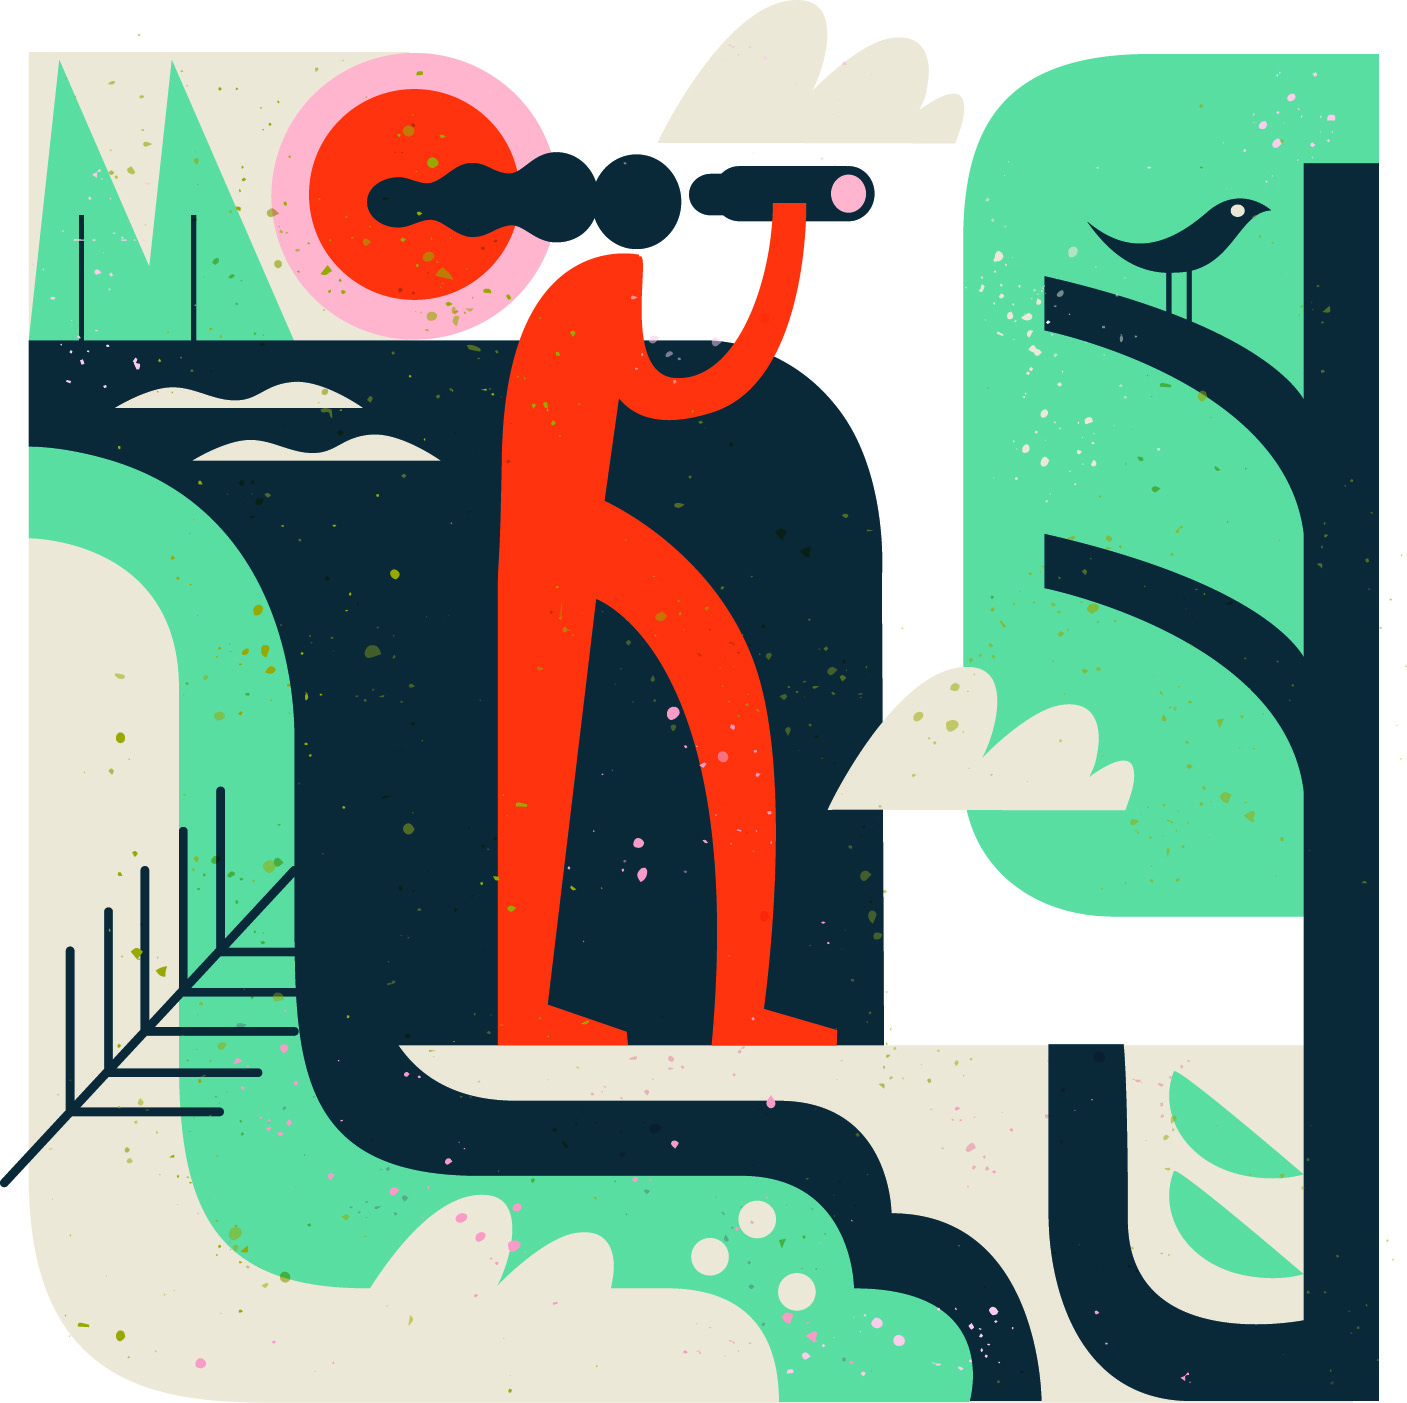 Spot illustration for nature travel. Image of person looking at birds through binoculars.